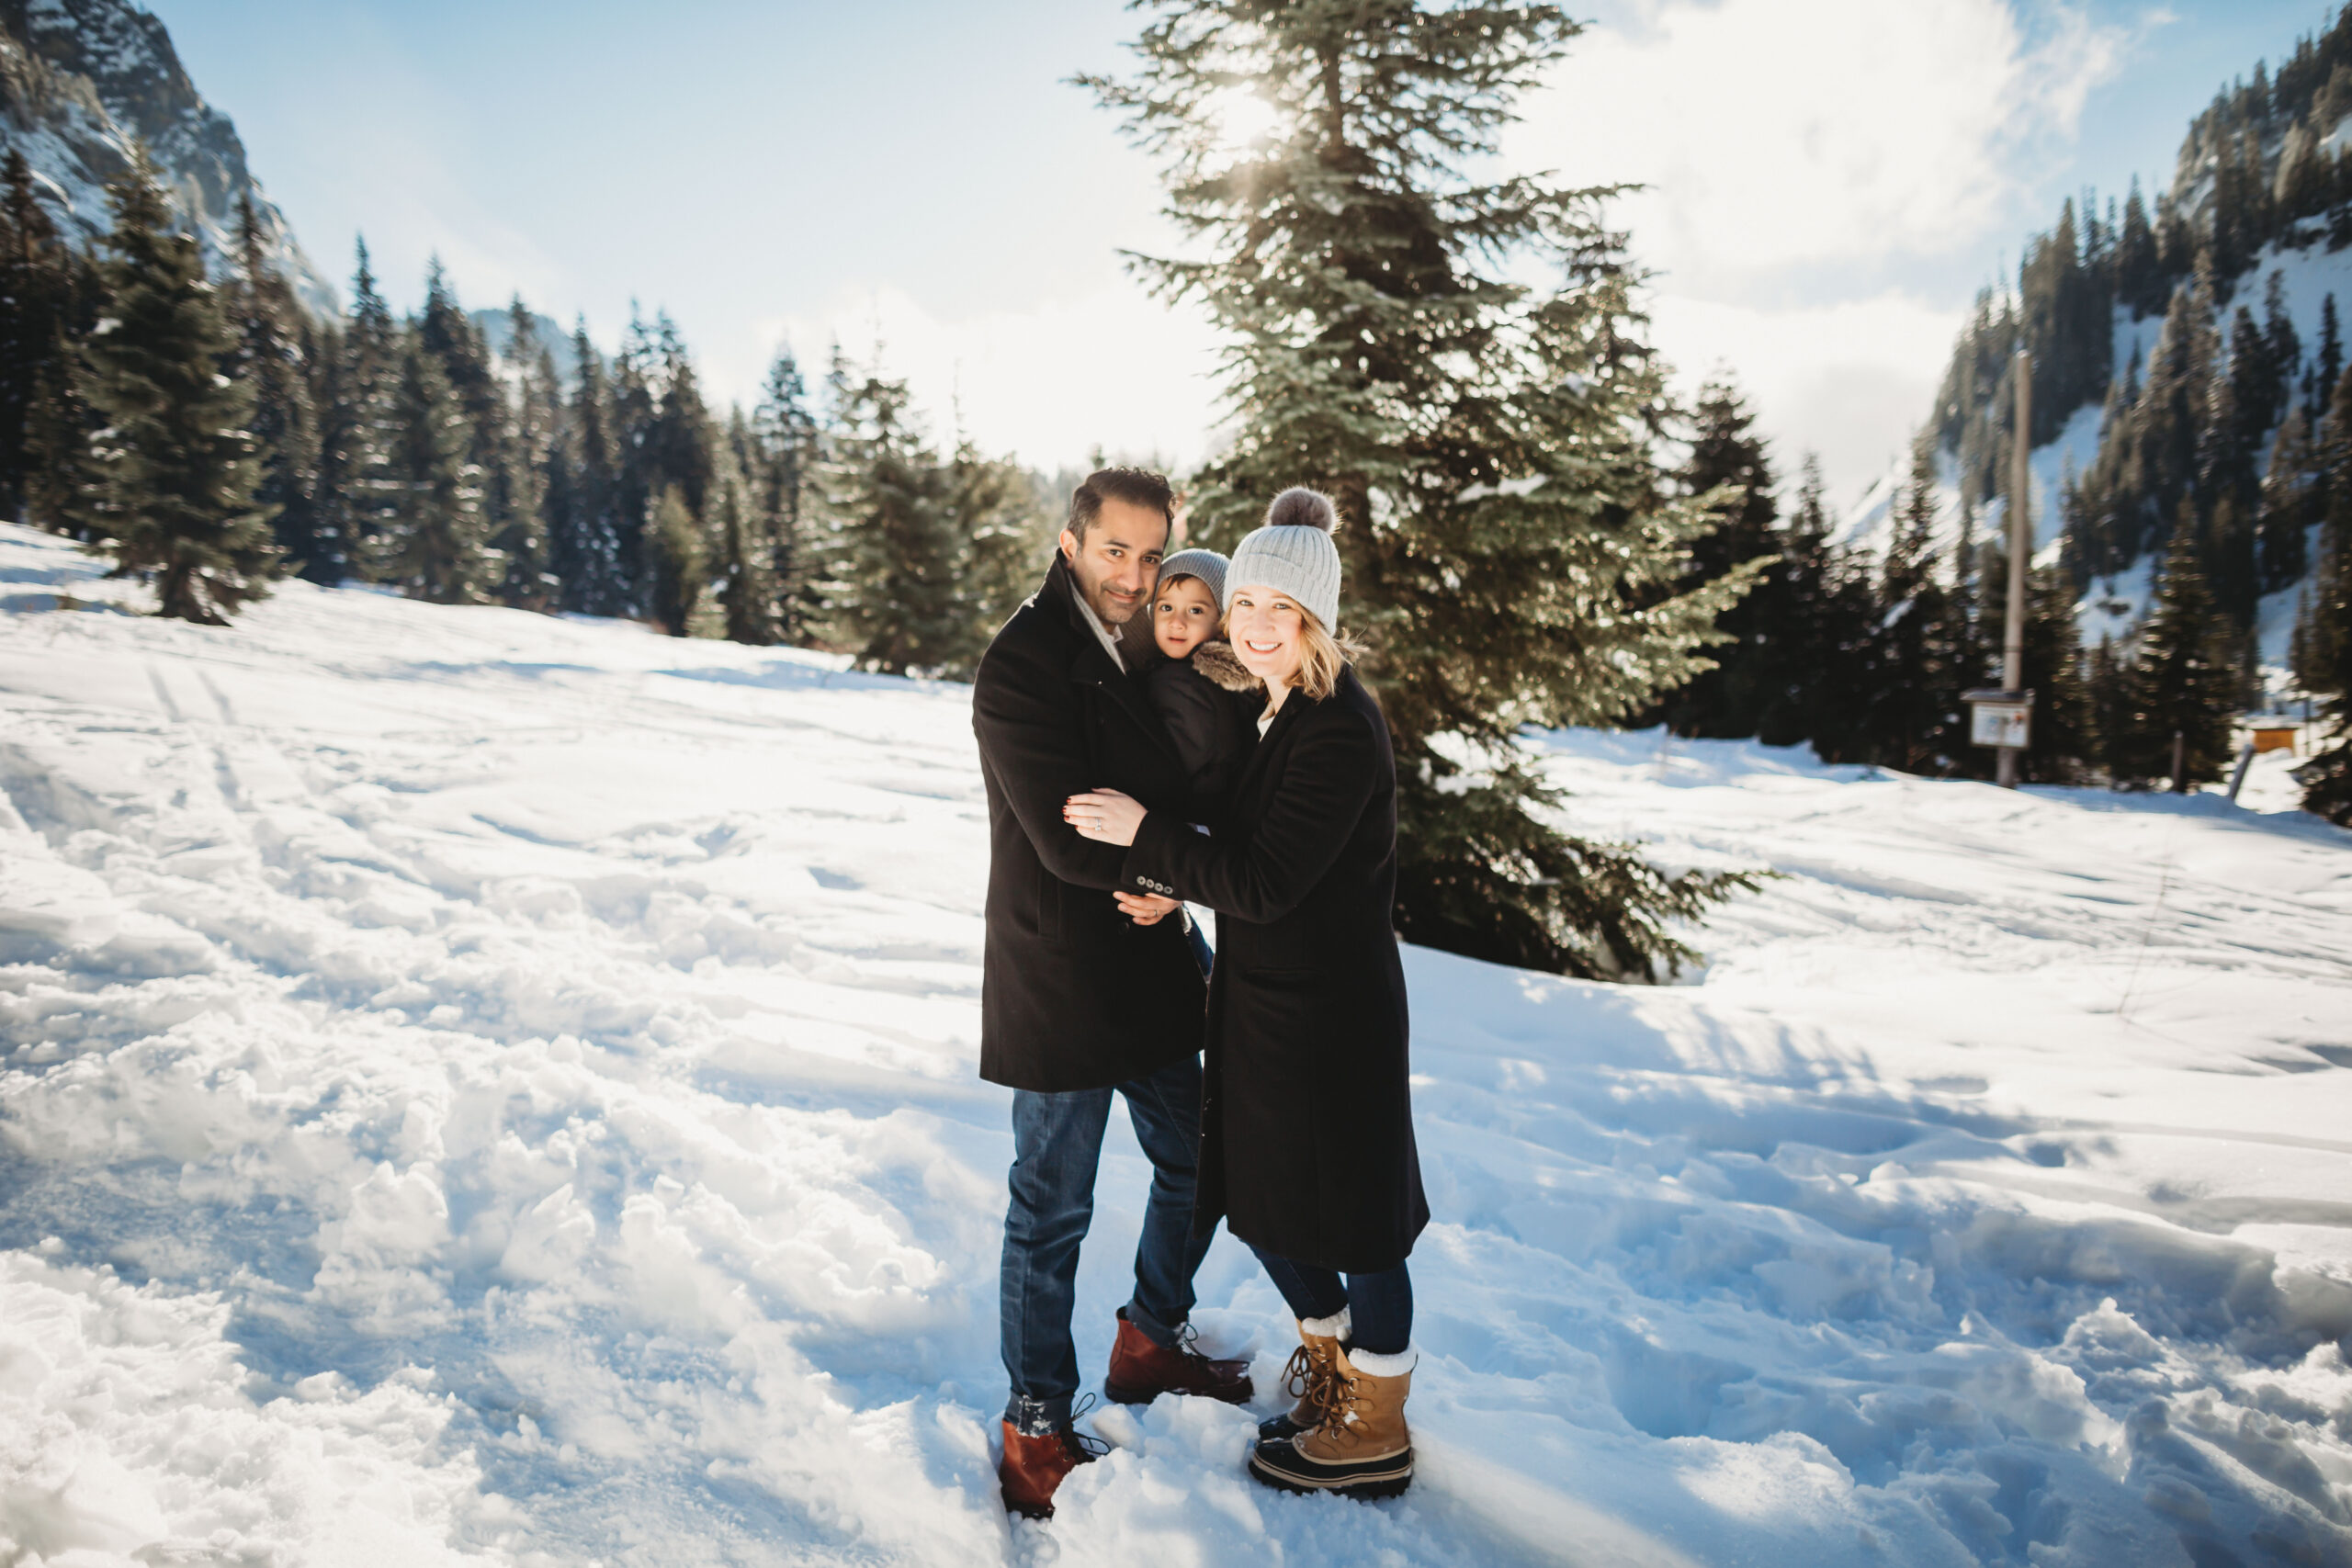 SEATTLE SNOW SESSION PHOTOGRAPHY